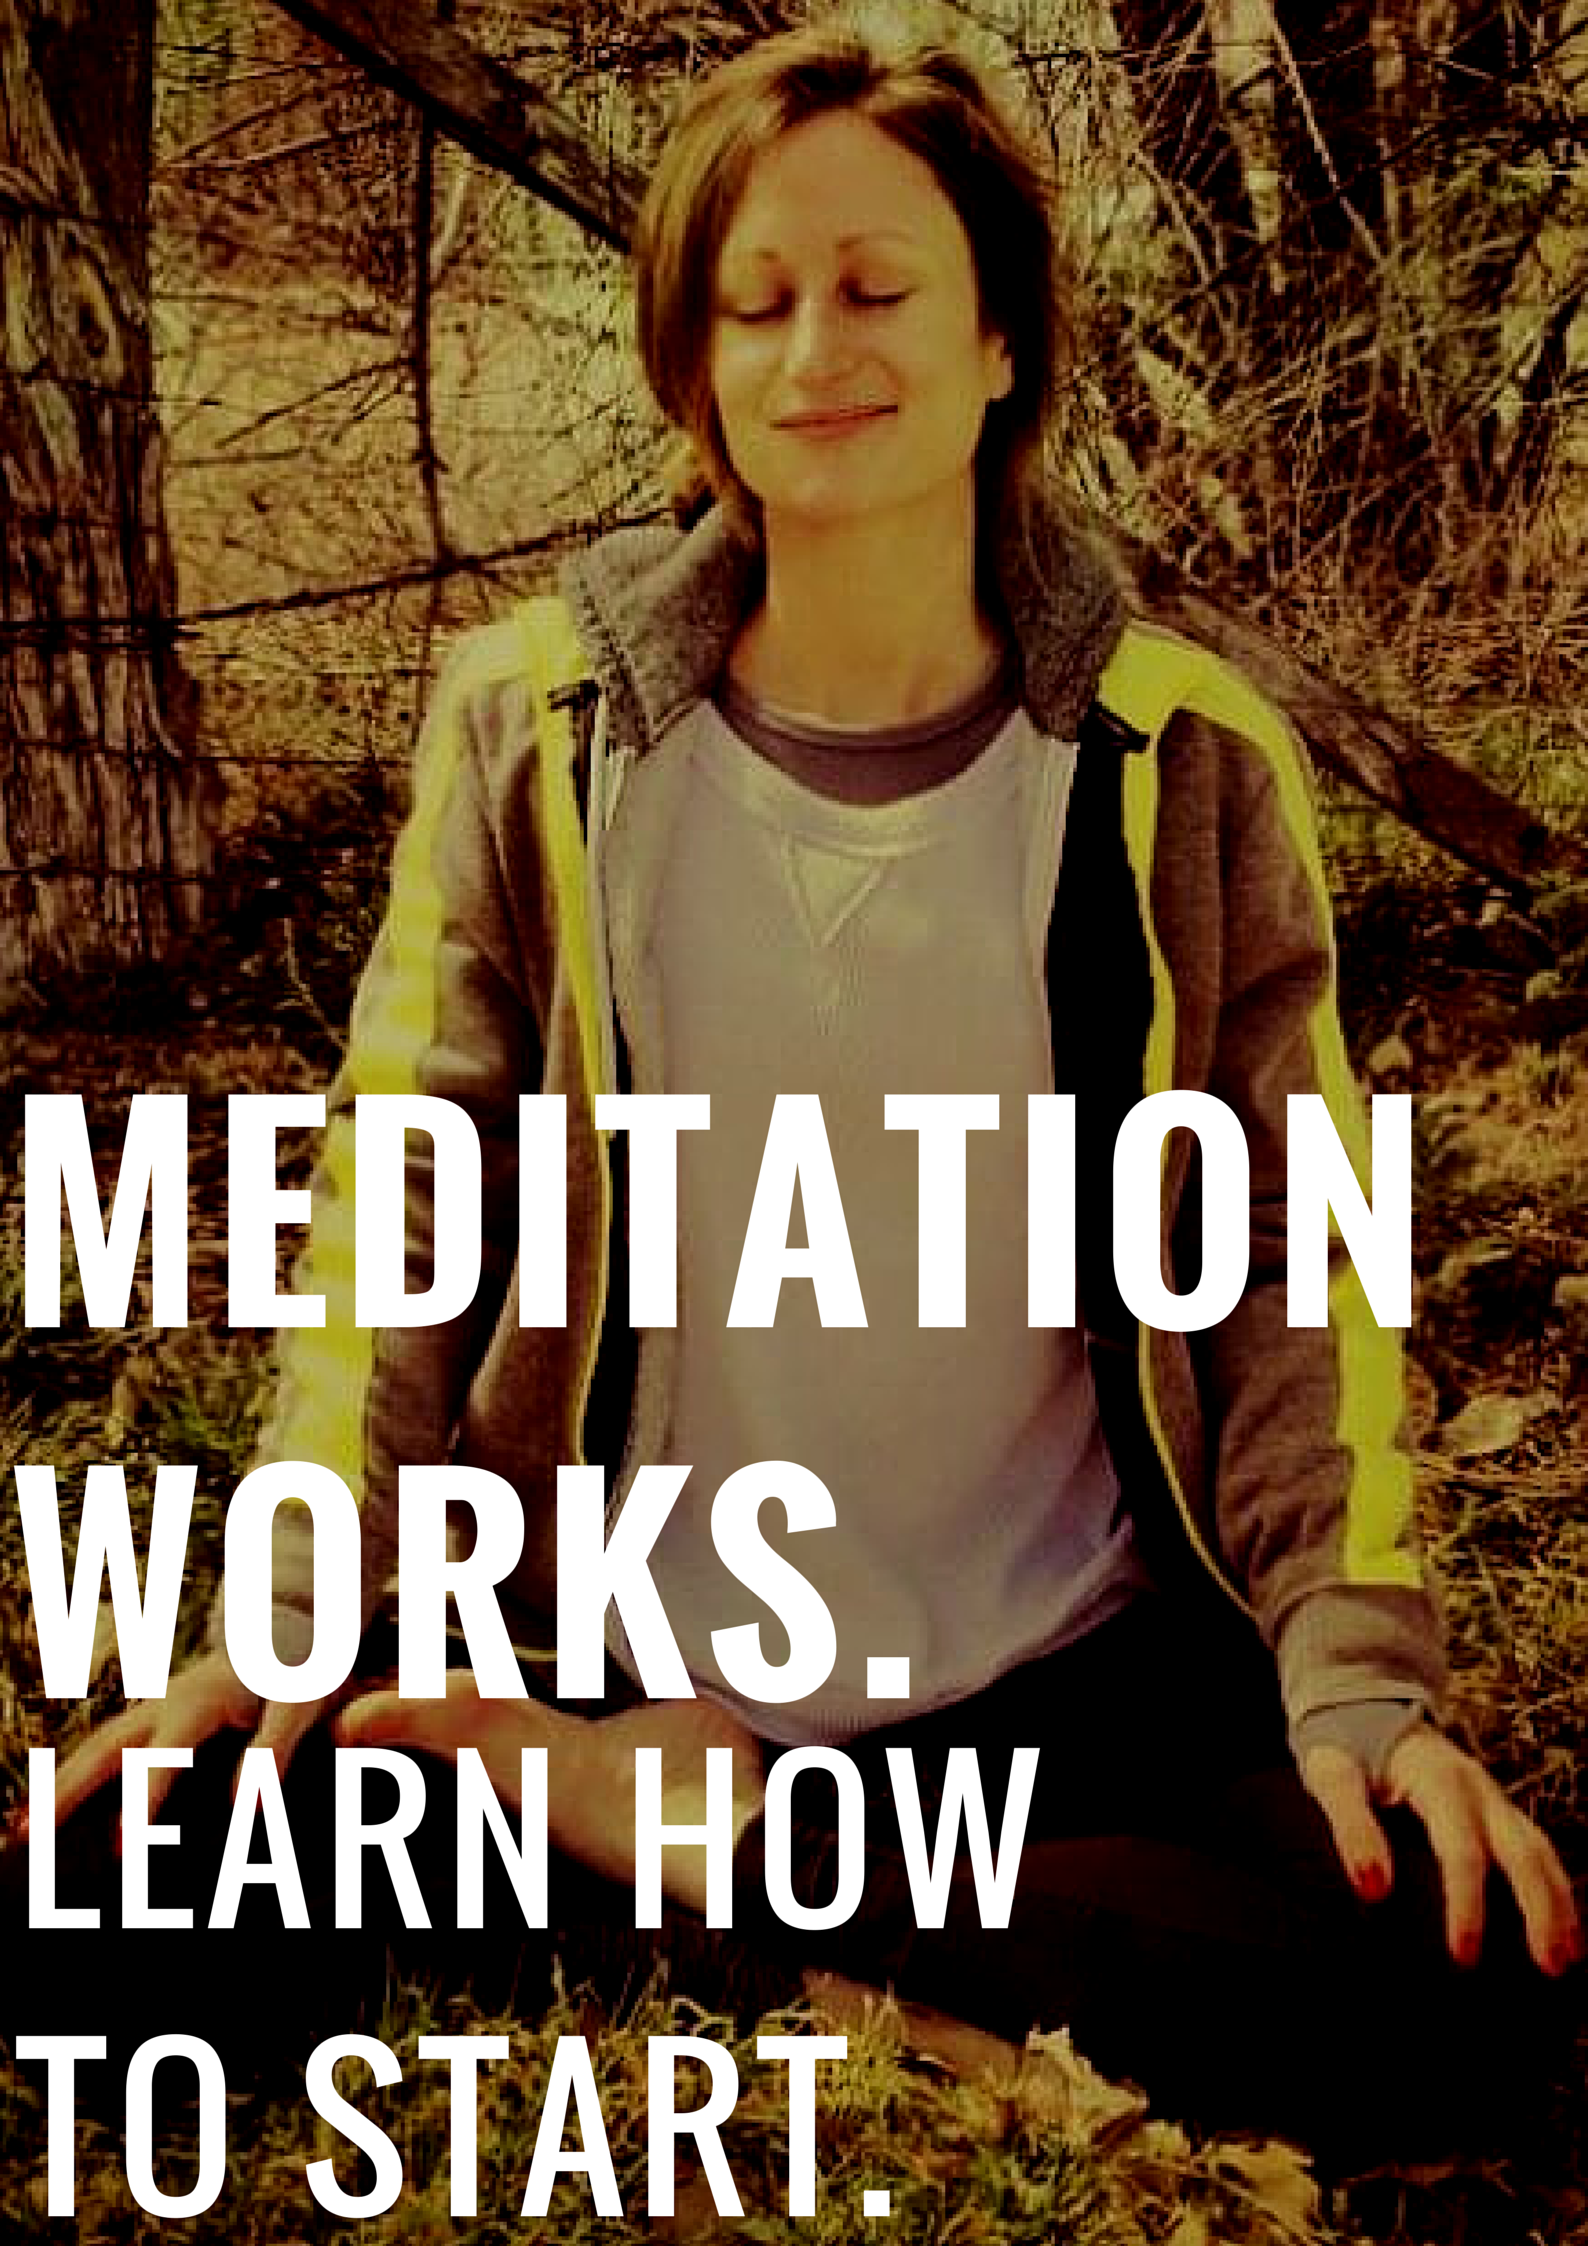 MEDITATION 101 HIP SOBRIETY